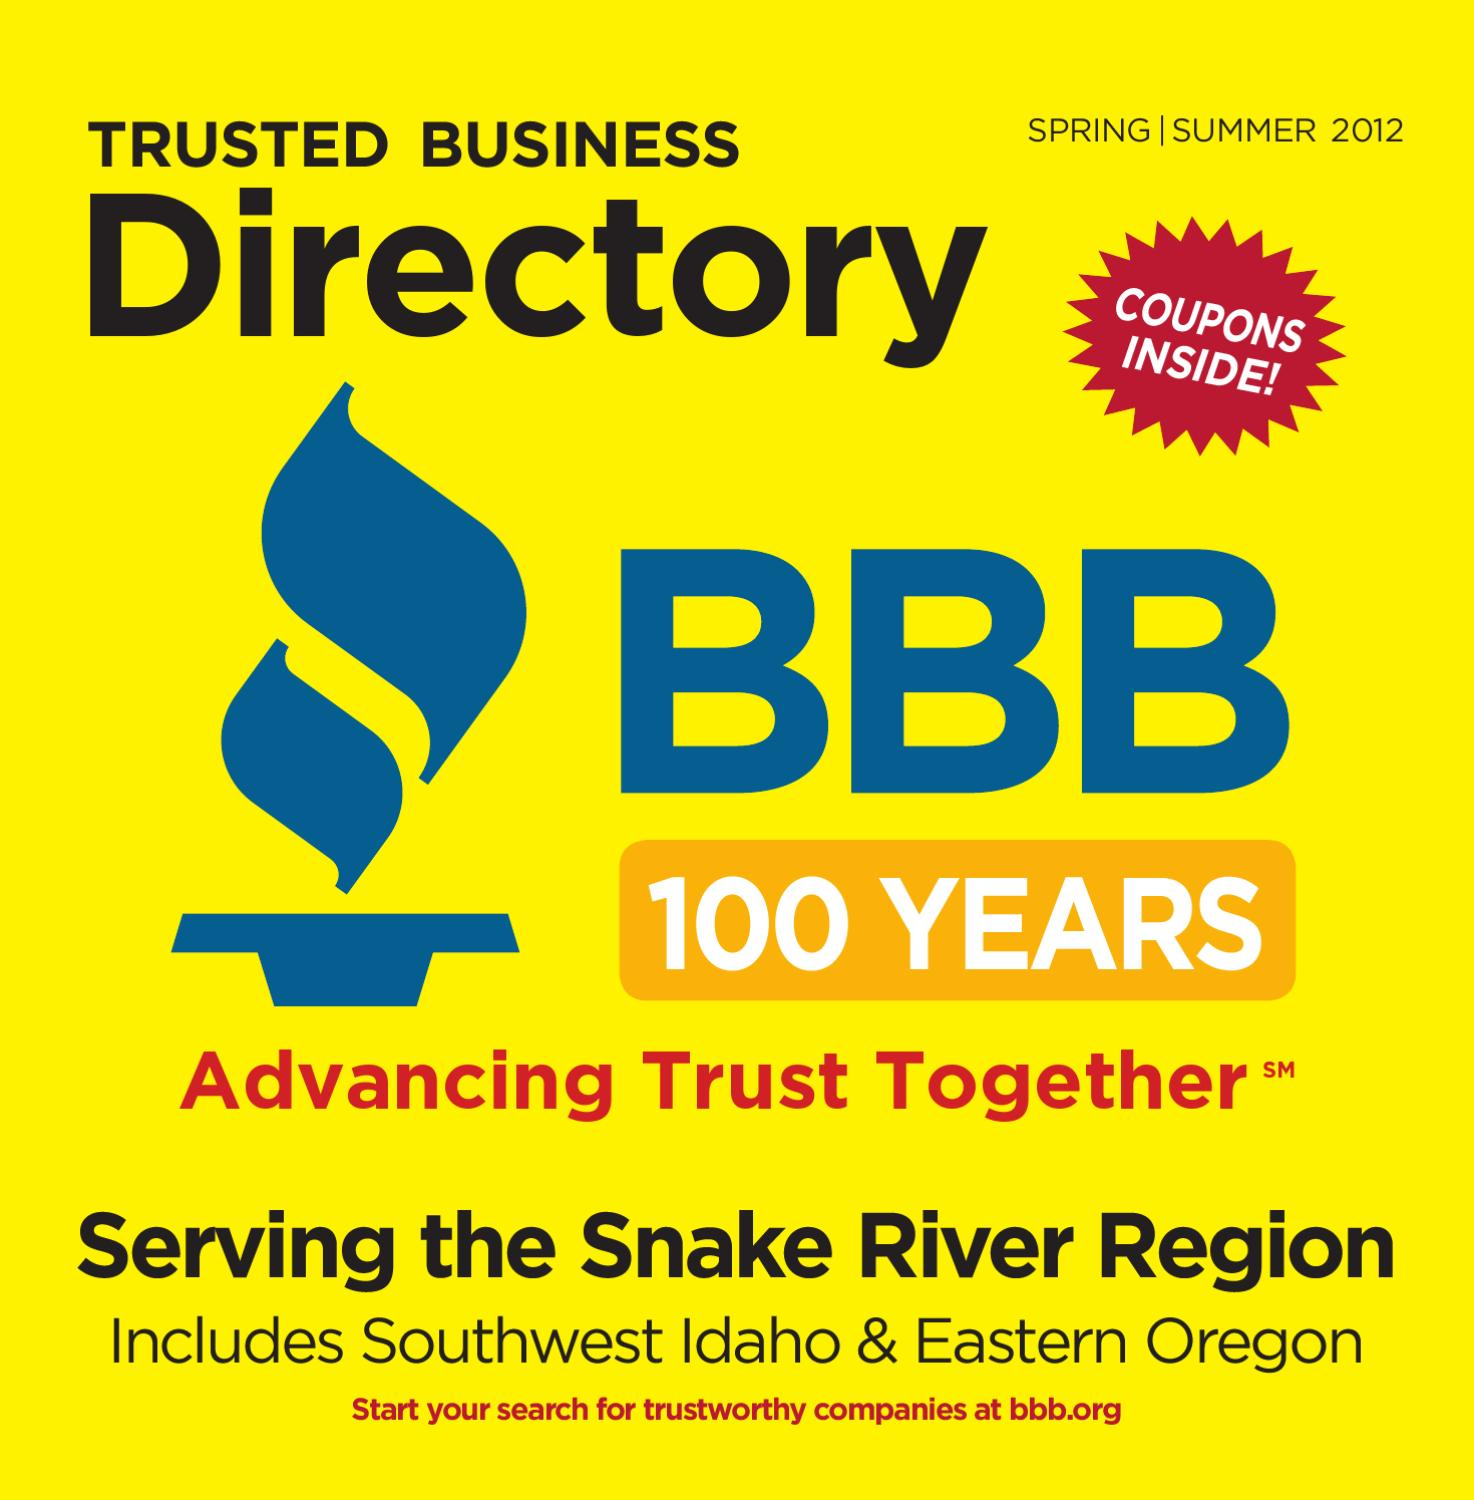 Better Business Bureau Spring Directory By Idaho Statesman Issuu Home Gt Appliances Rv Appliance Circuit Boards